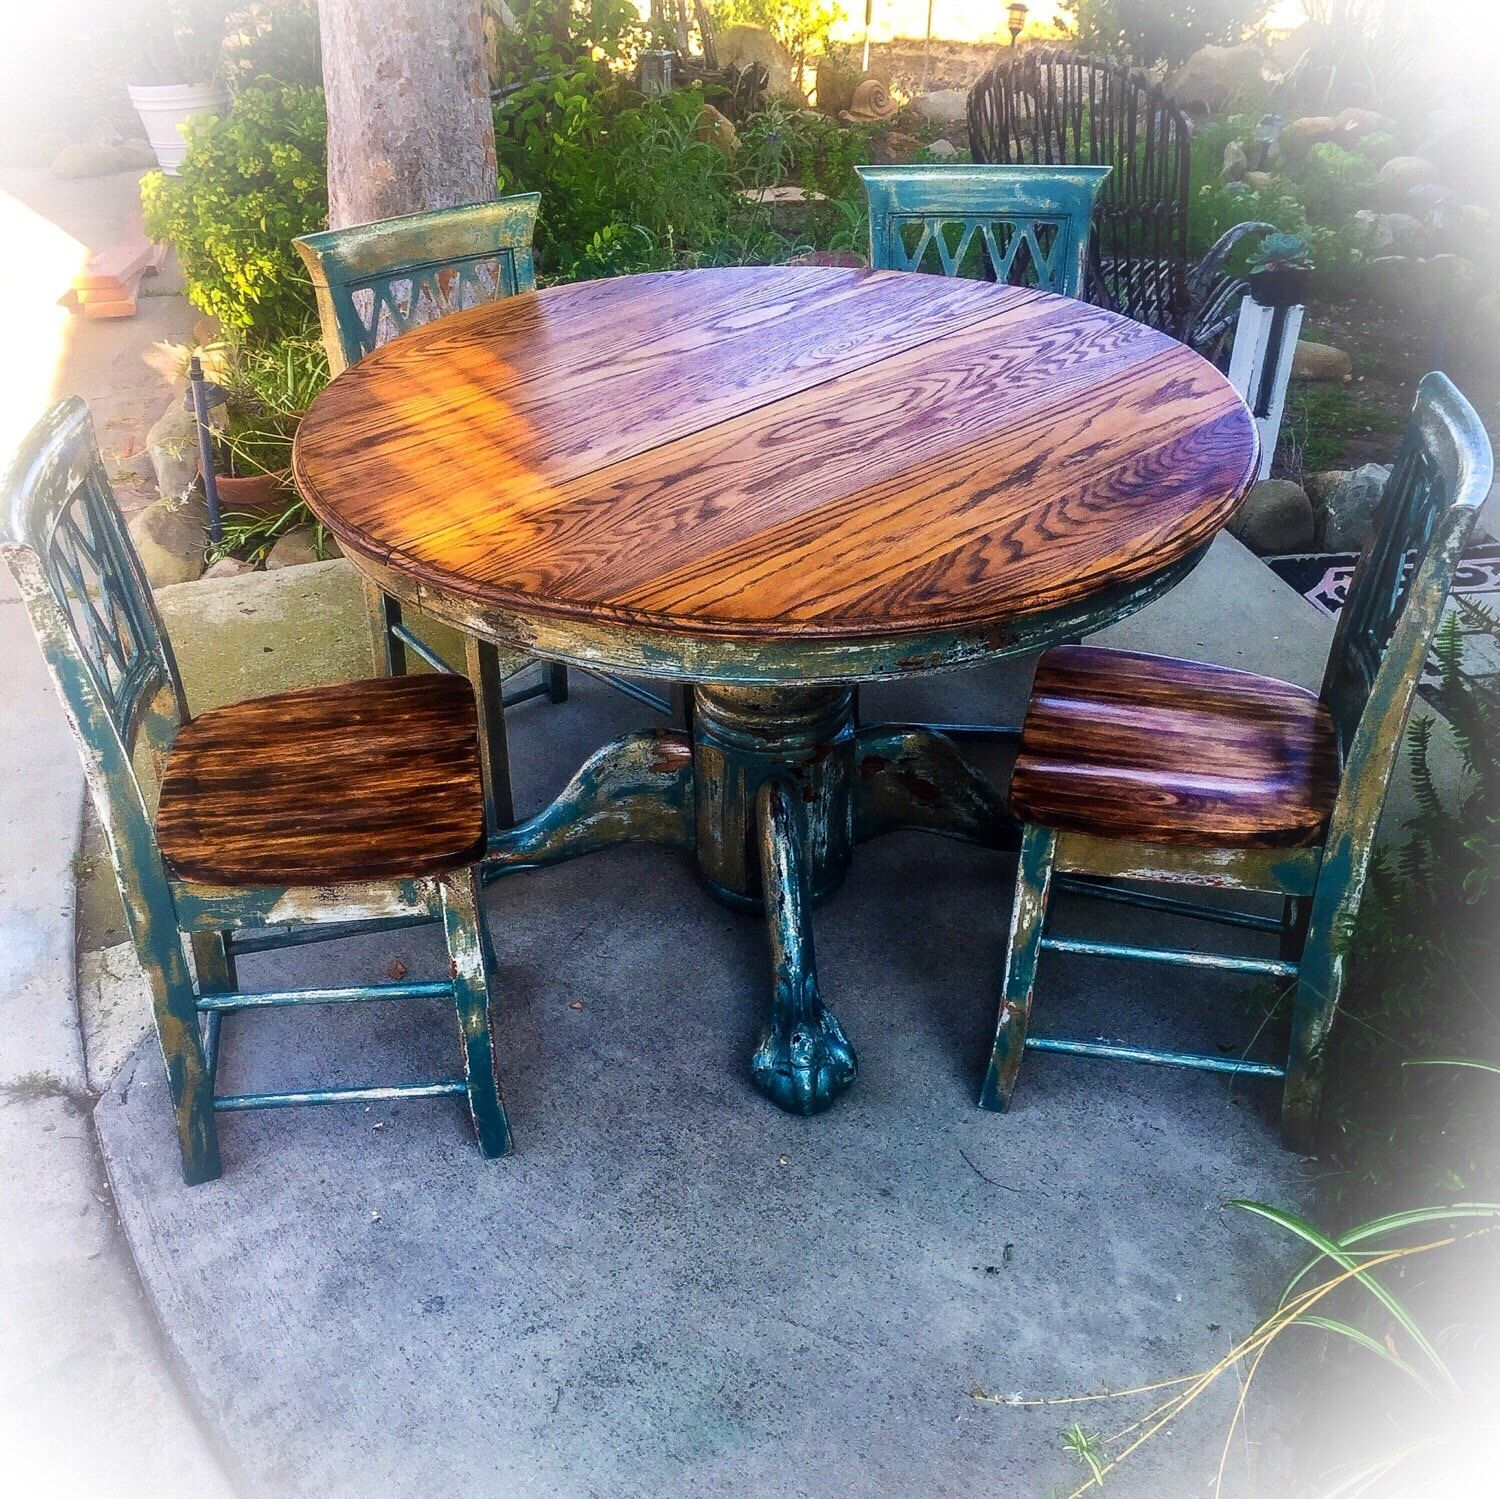 SOLD - Burnt Oak, Table & Chair Set, large, distressed, farmhouse ...